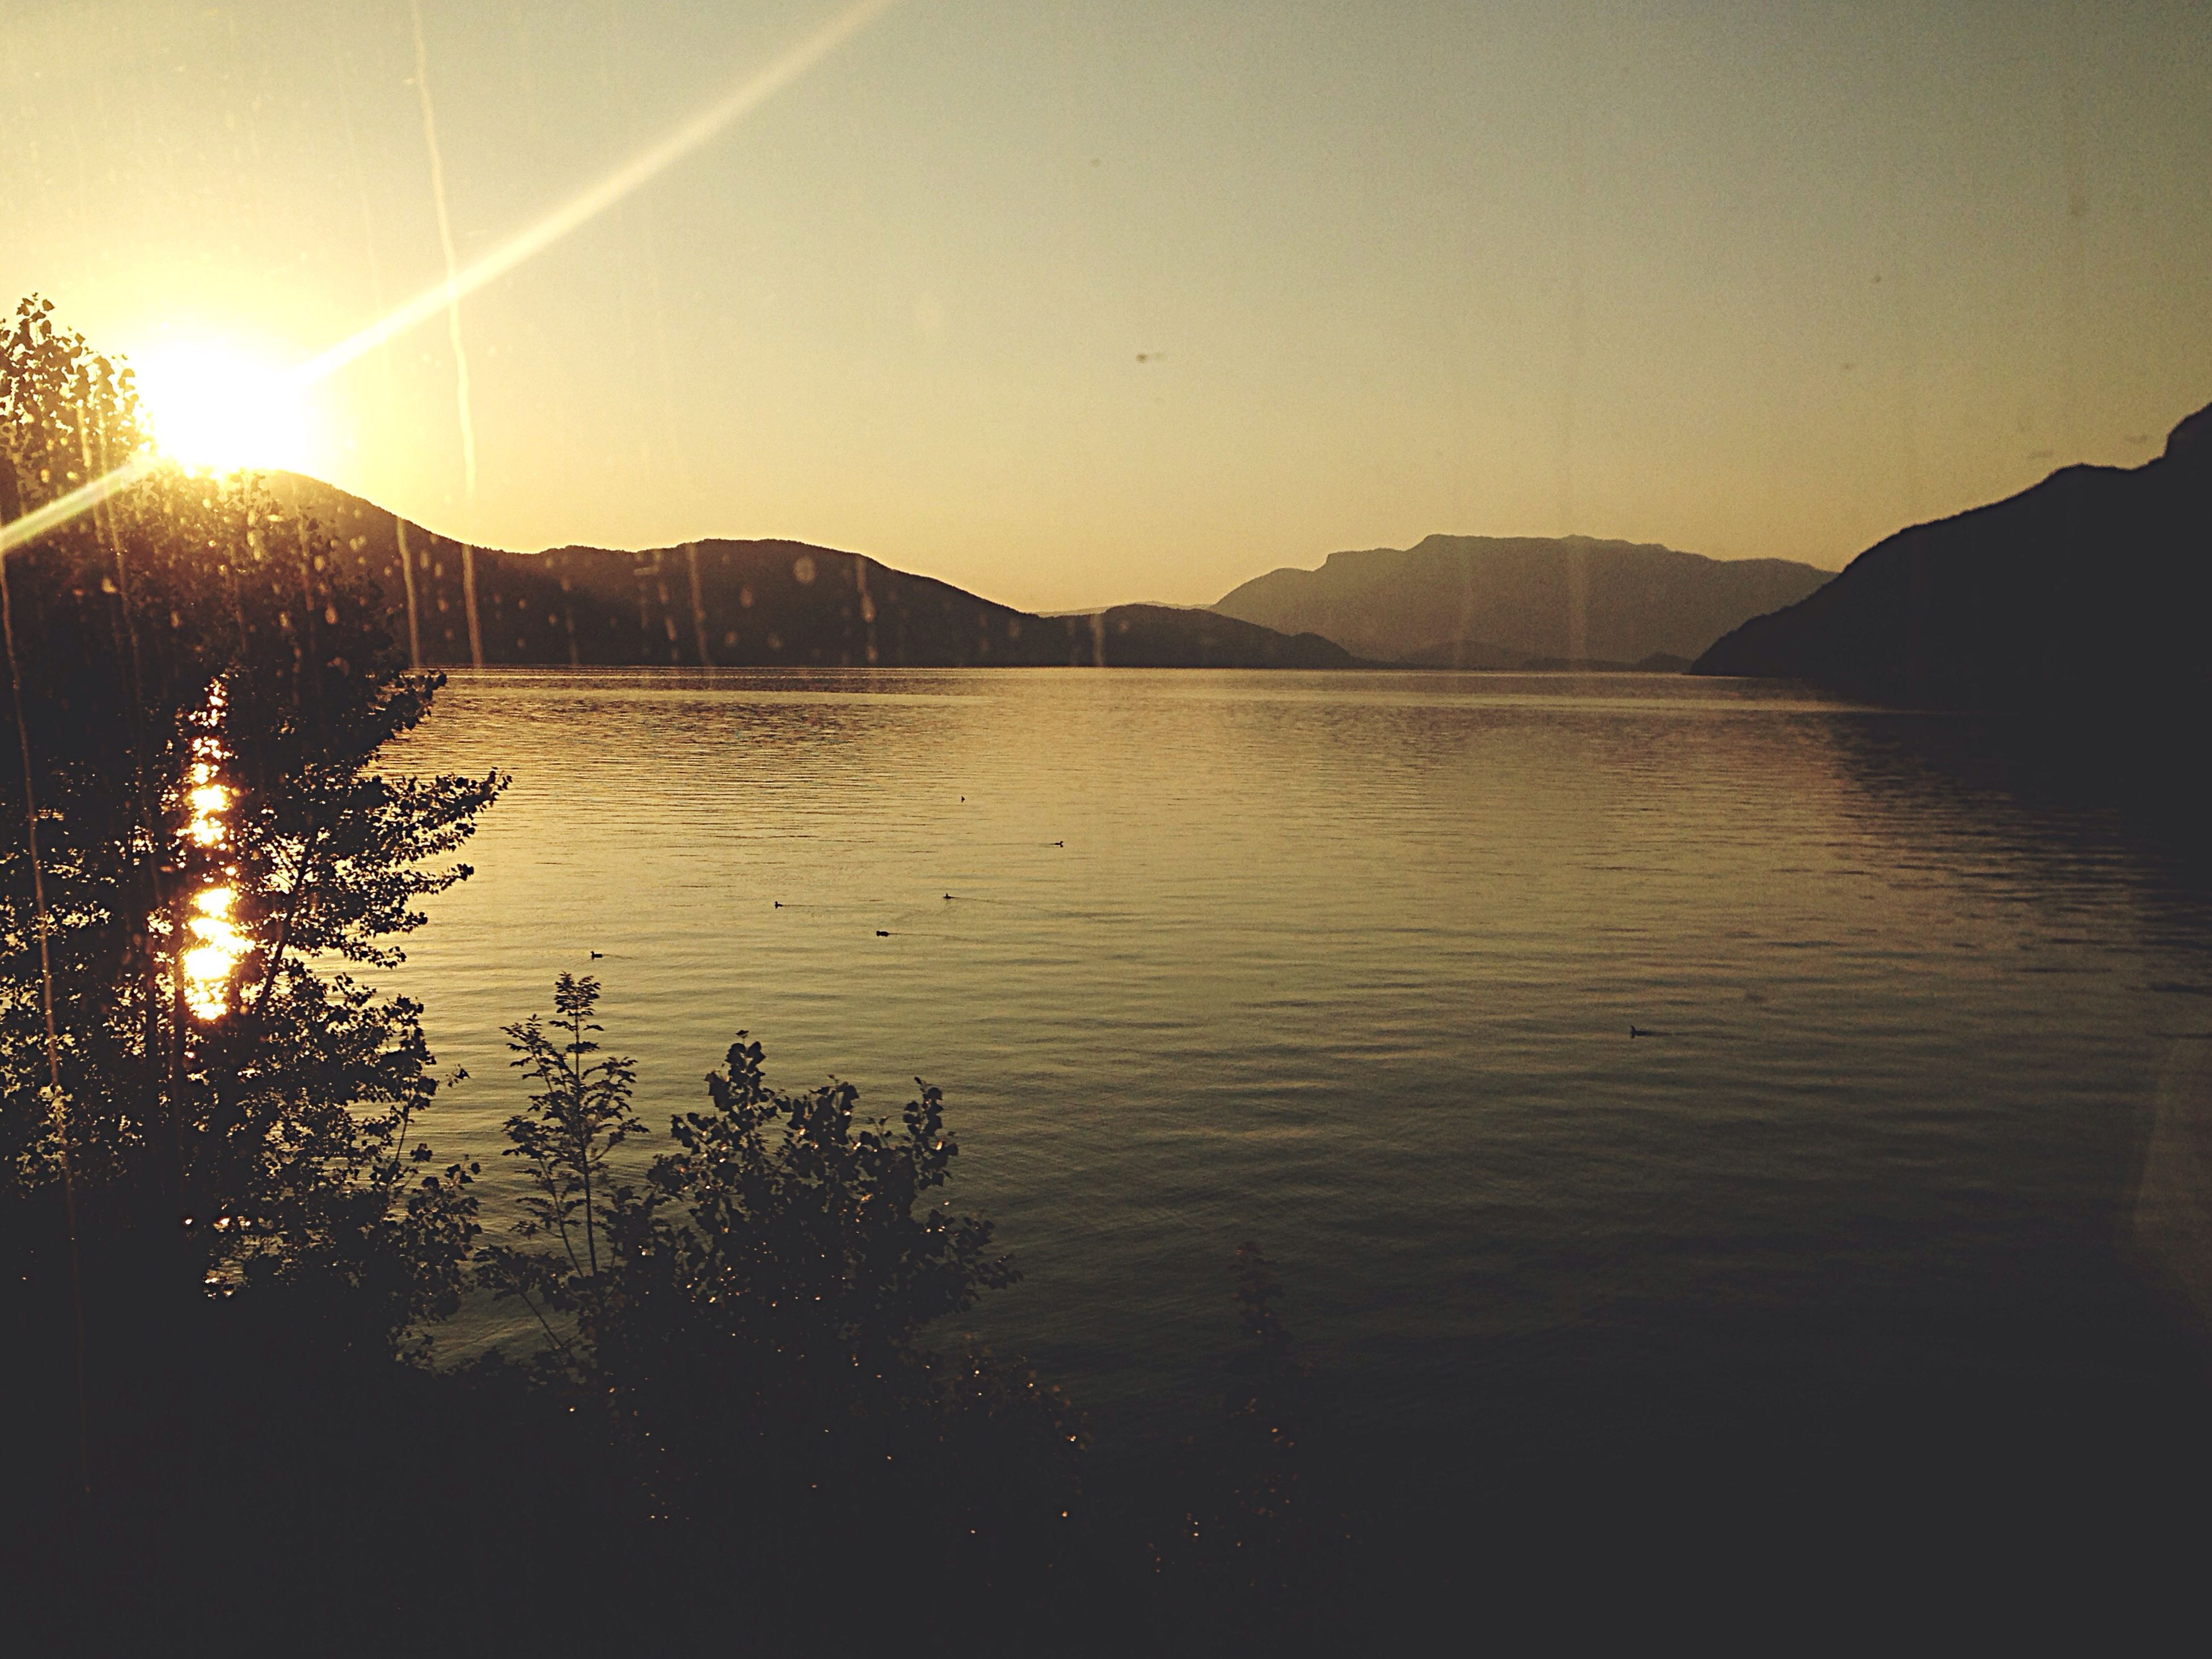 sun, water, mountain, sunbeam, tranquil scene, lens flare, scenics, tranquility, sunset, sunlight, beauty in nature, reflection, lake, river, nature, sky, silhouette, clear sky, idyllic, mountain range